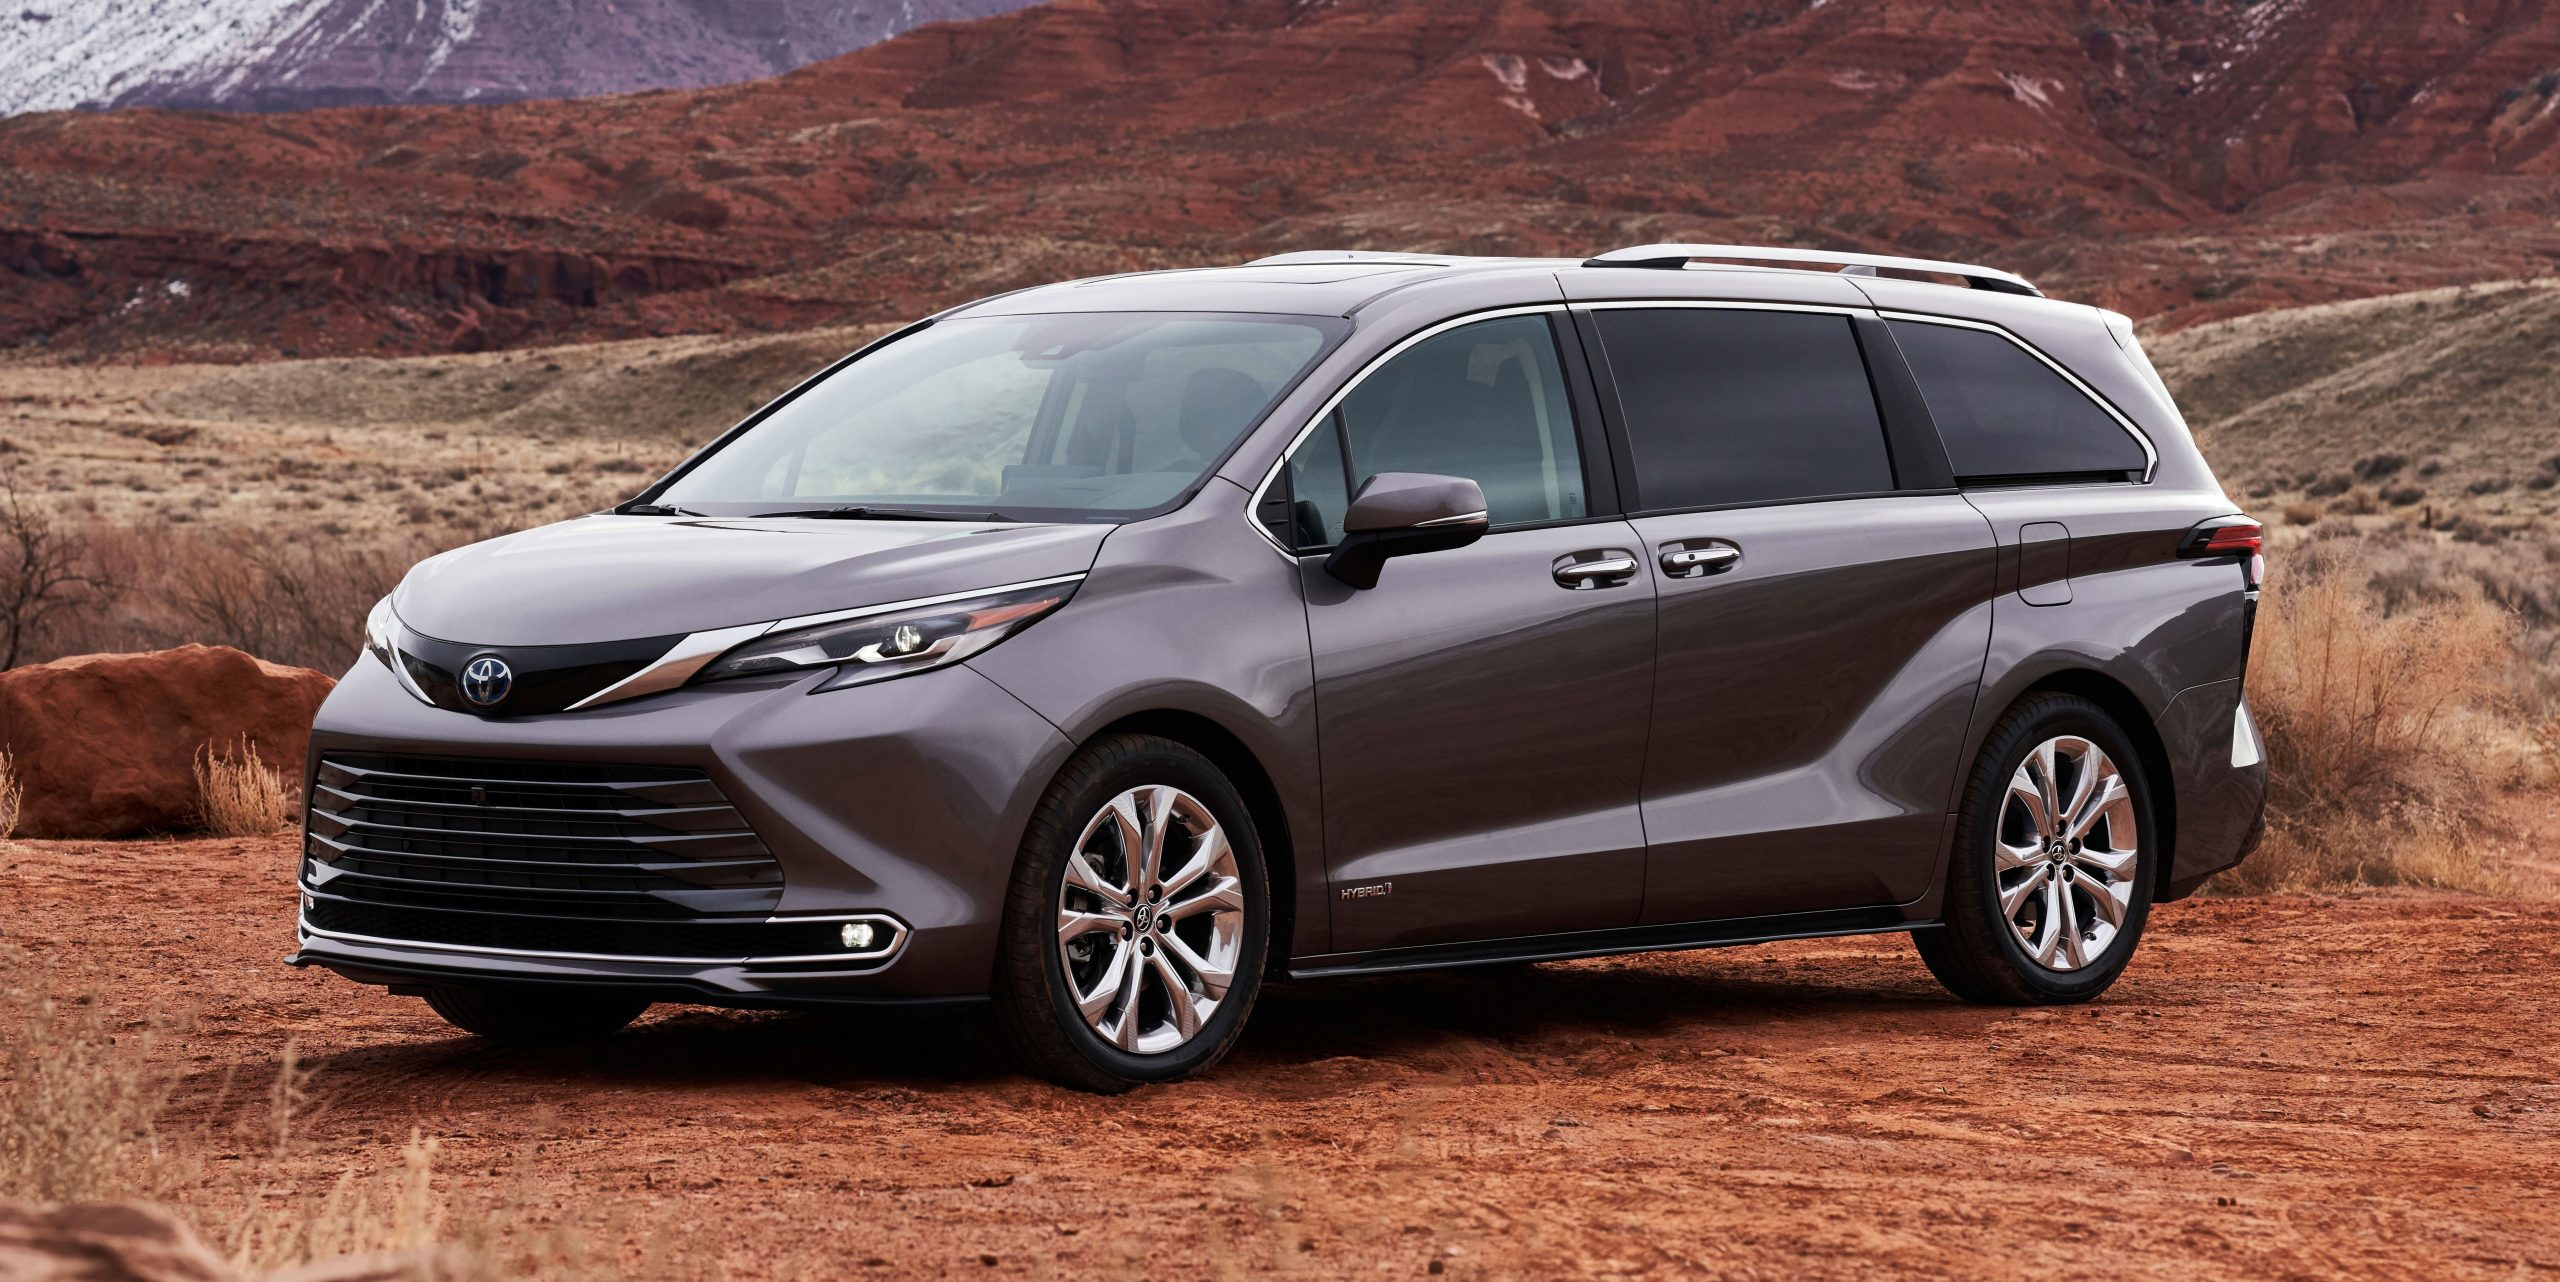 4 Toyota Sienna Review, Pricing, and Specs